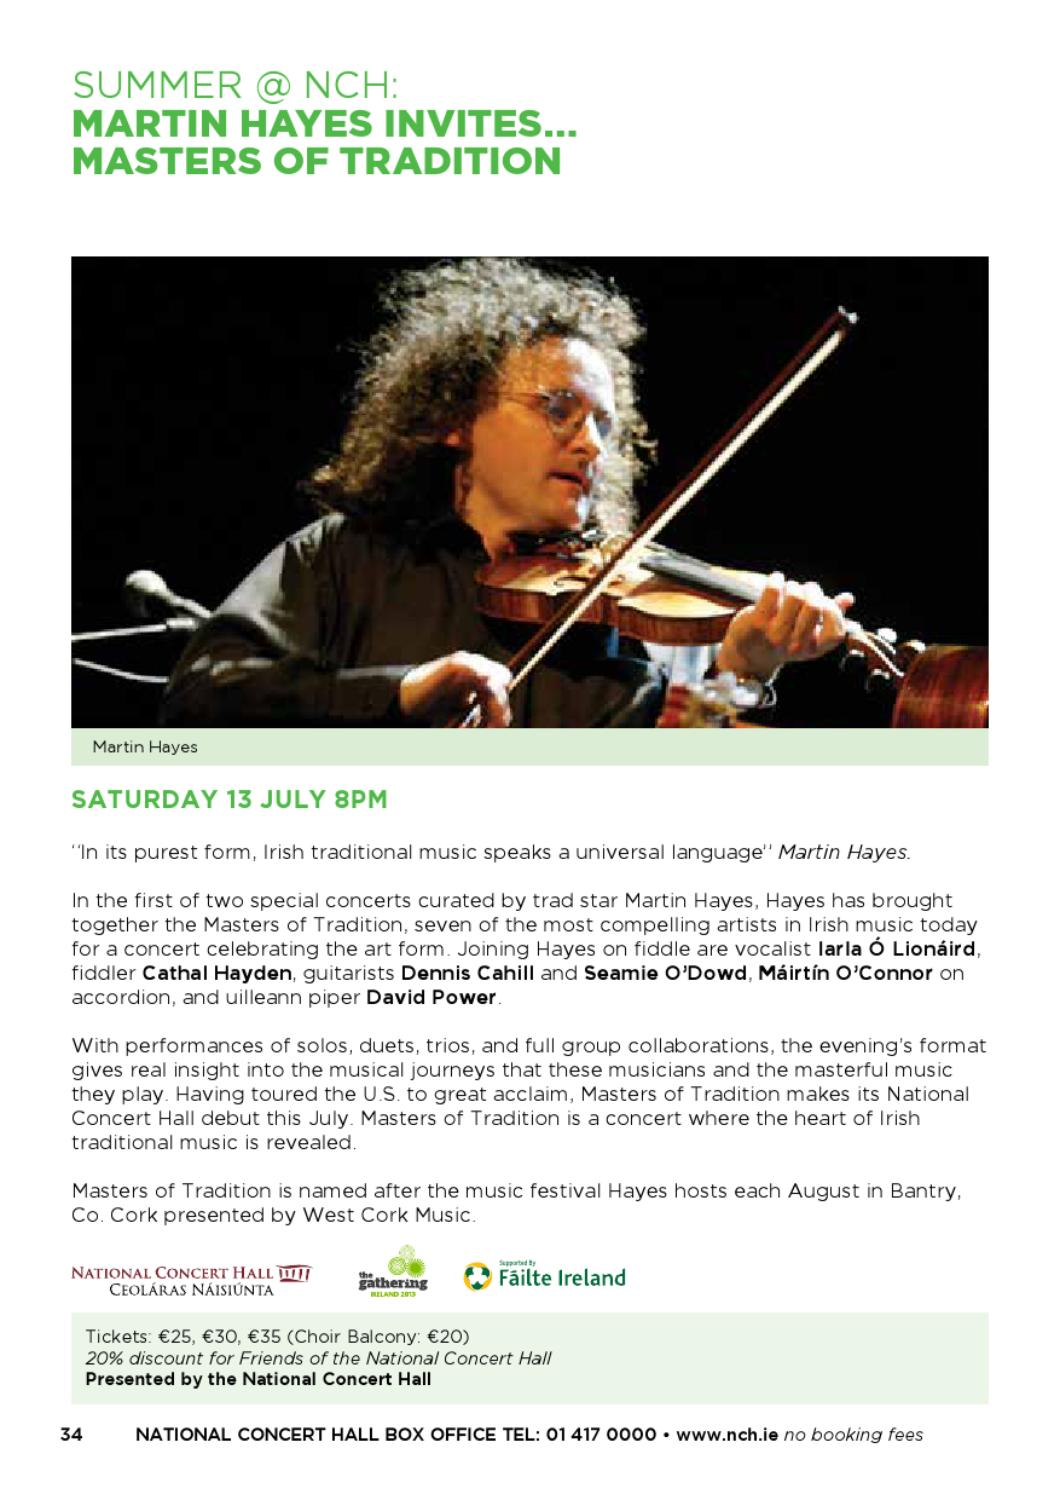 June - August Calendar of Events 2013 by National Concert